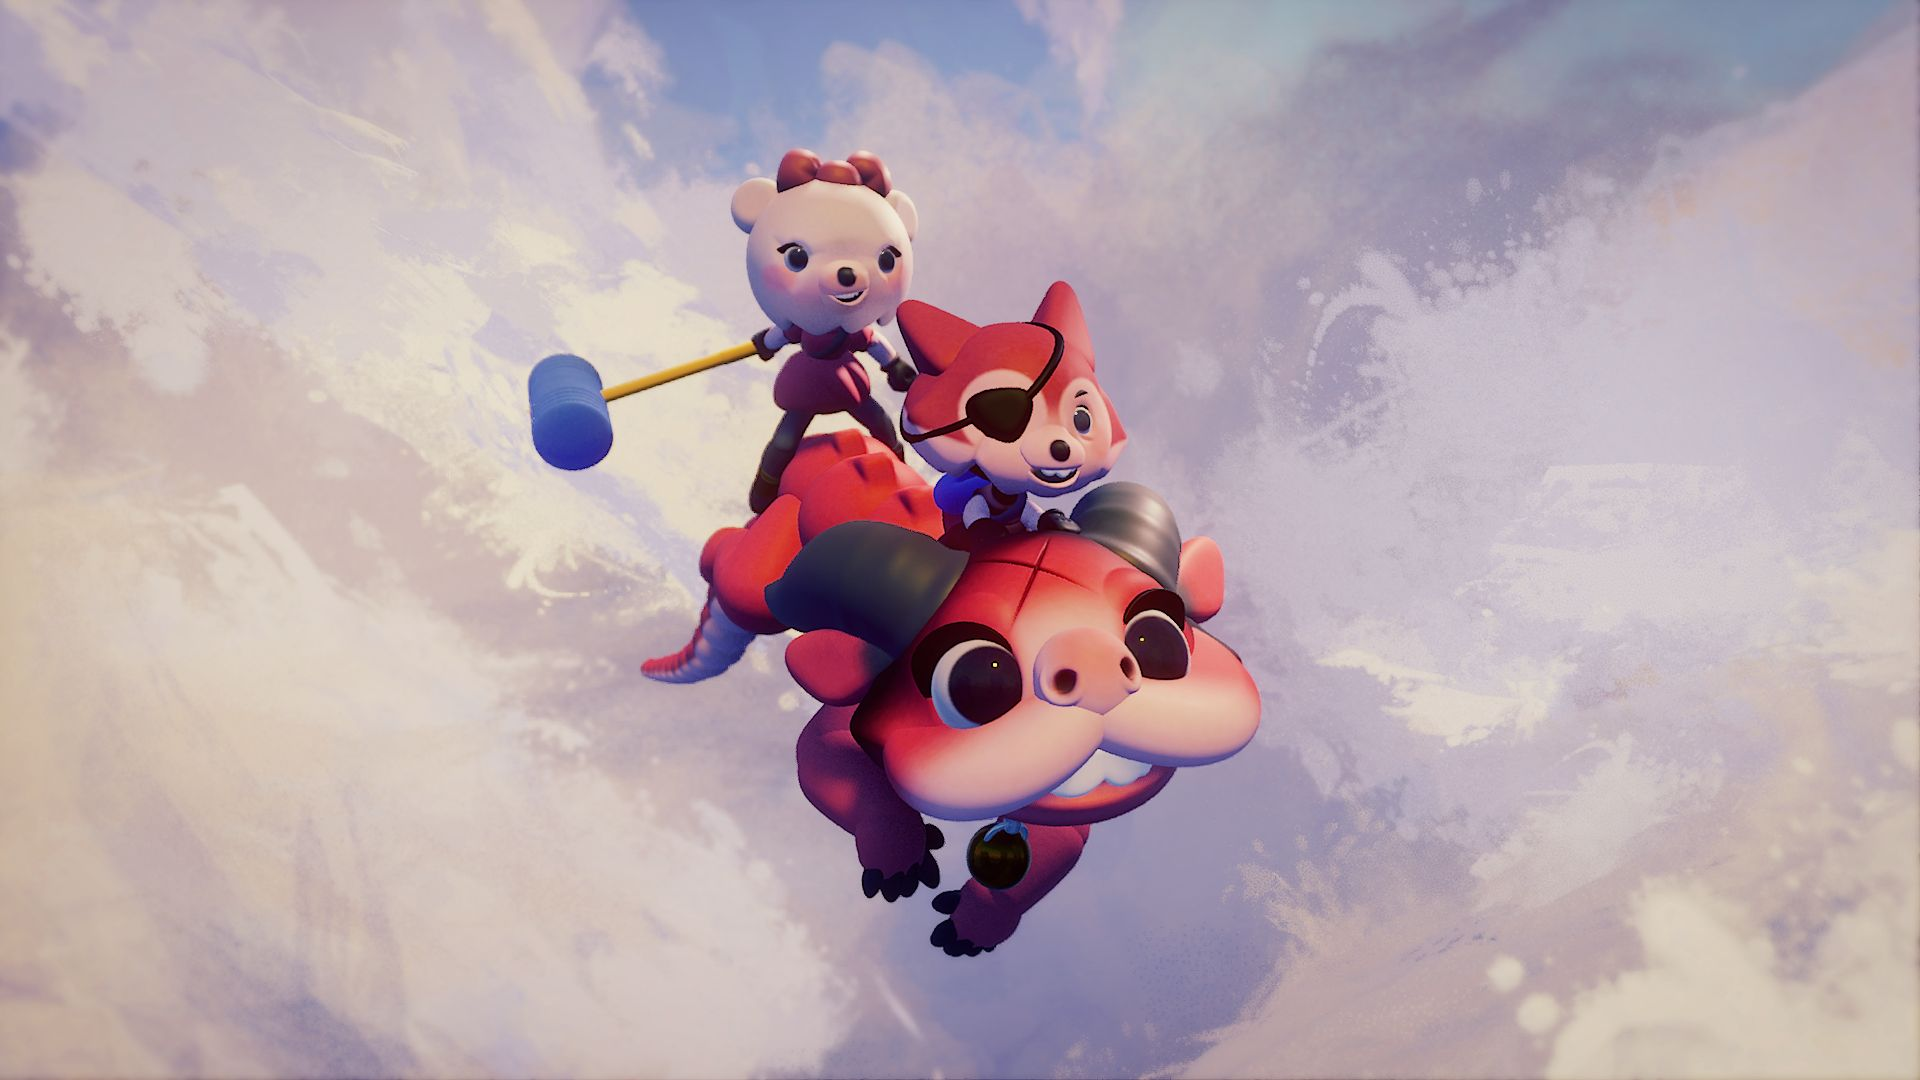 dreams early access release date